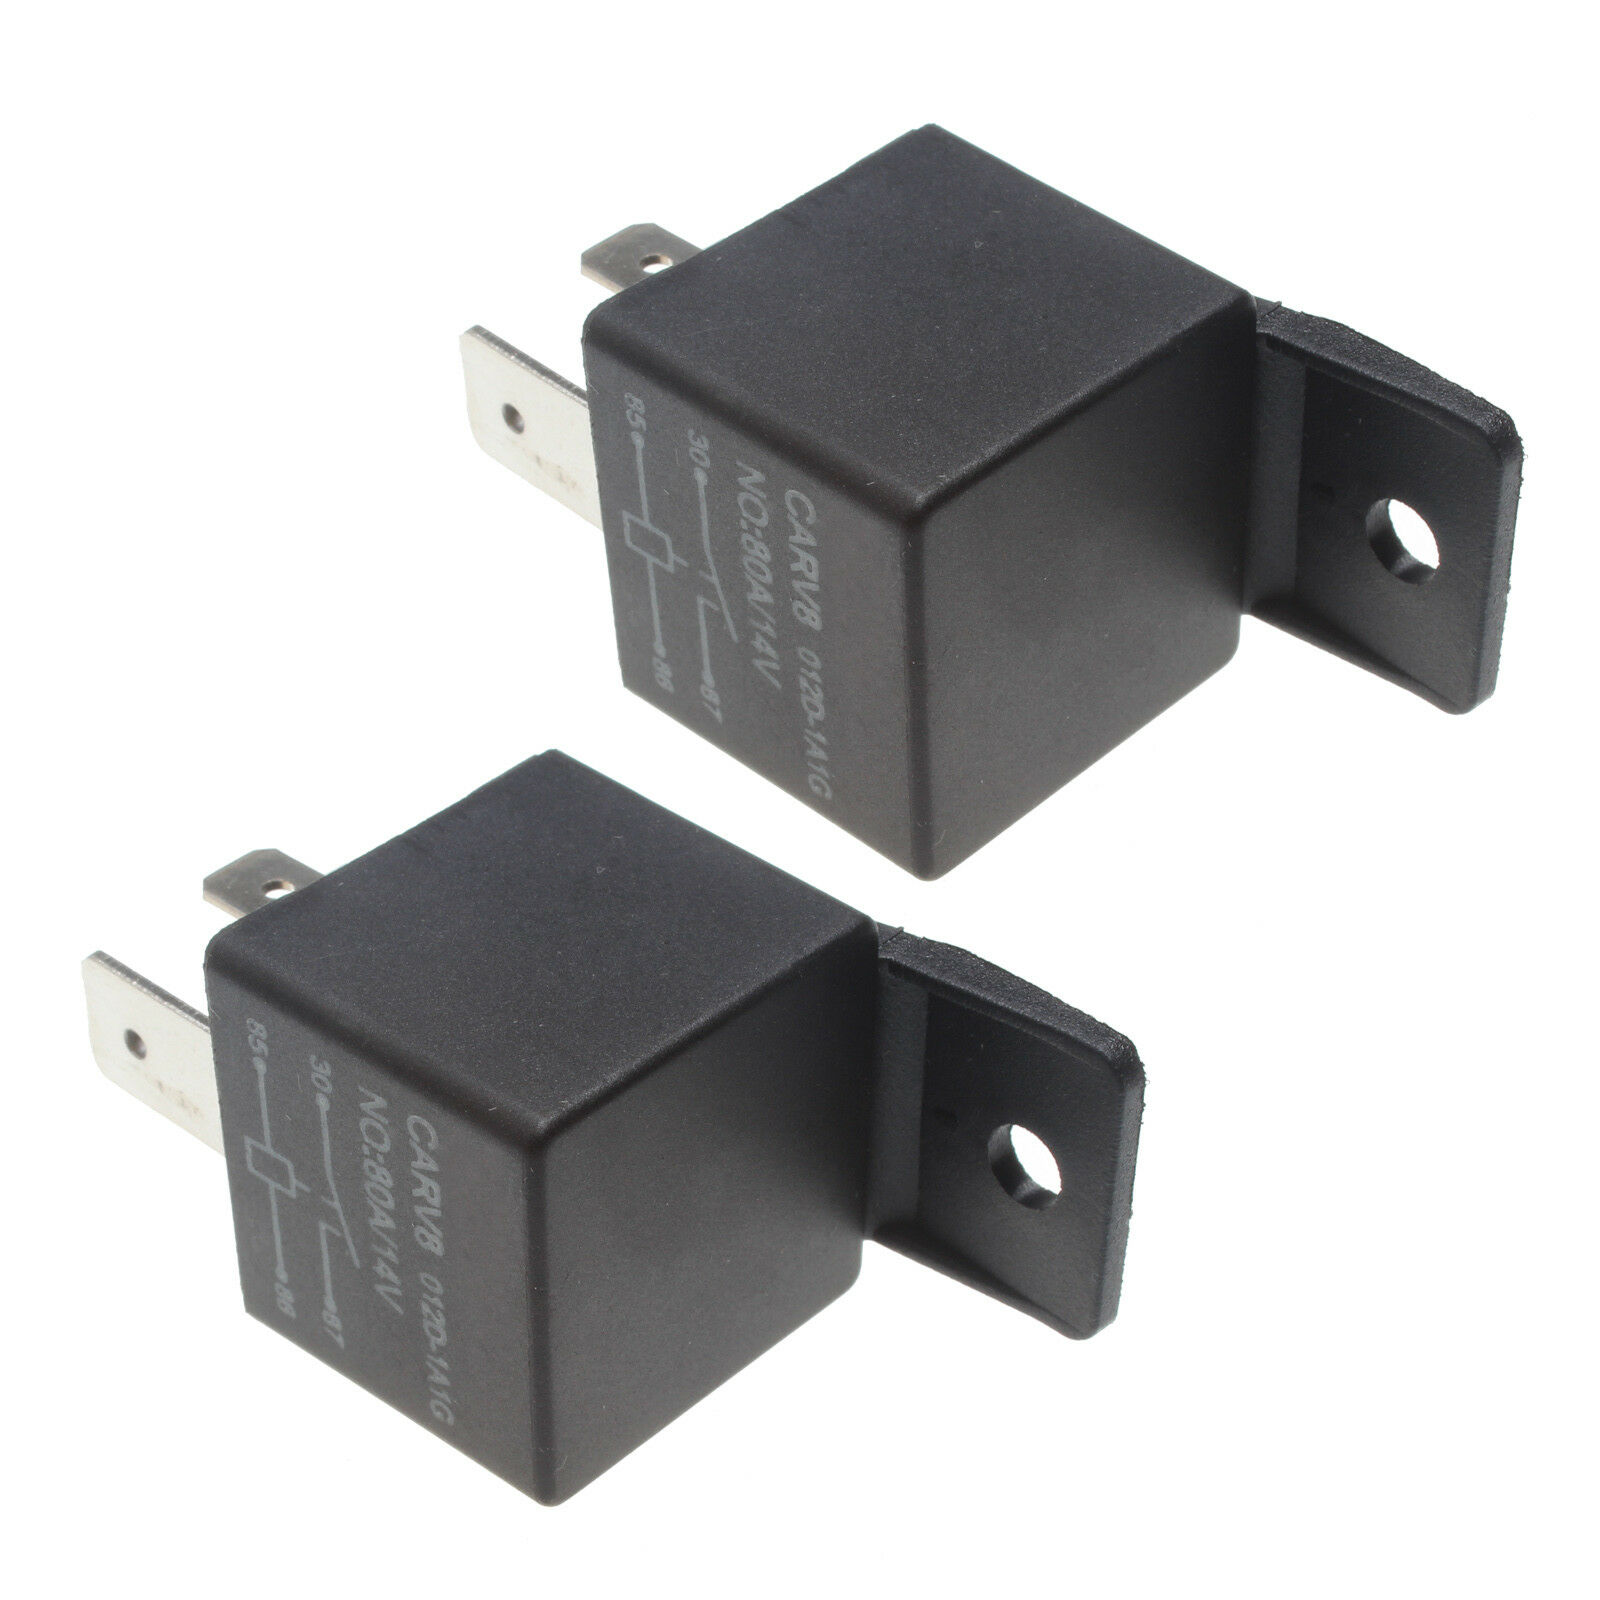 2 pcs 2x - 80A 14V FUEL SHUT OFF SOLENOID RELAY for 94-98 DODGE CUMMINS 5.9L